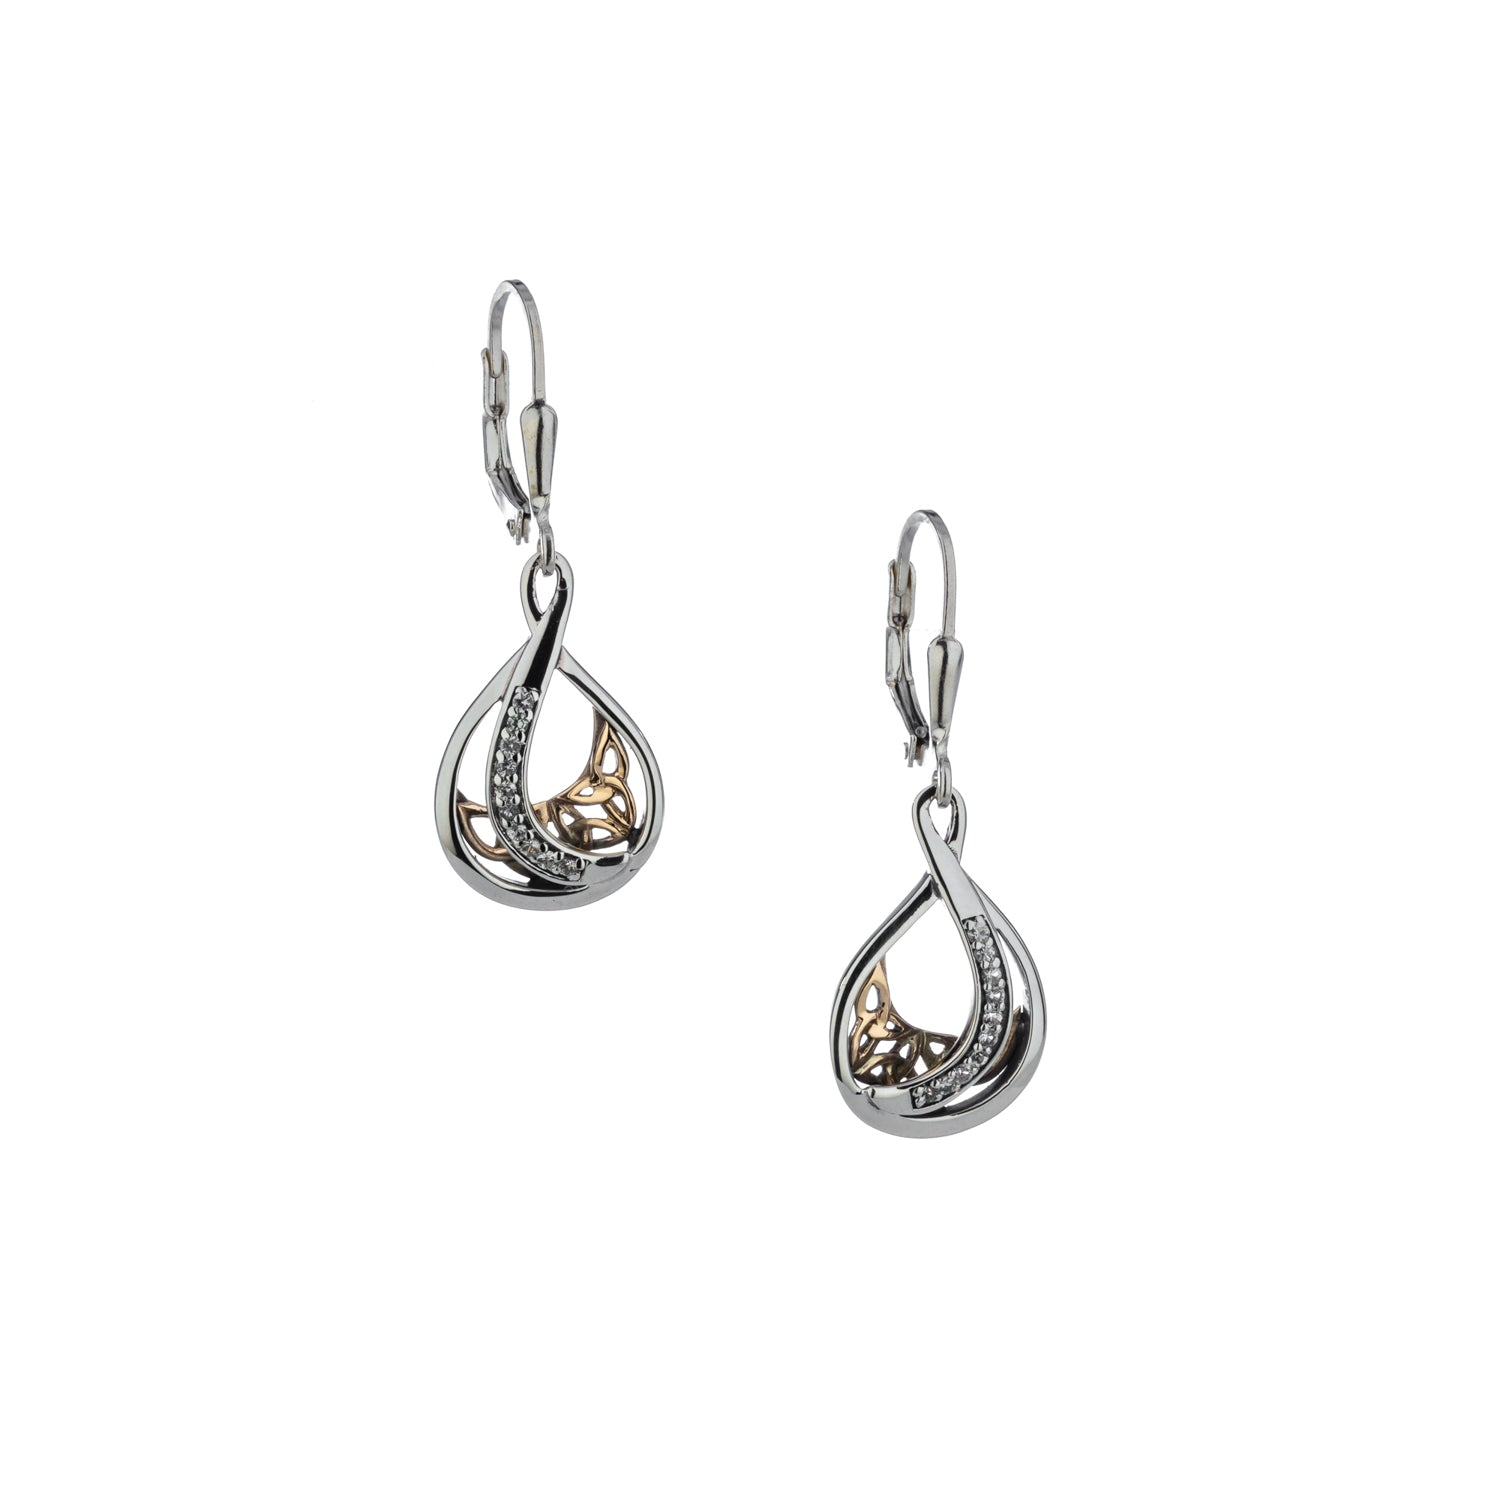 Earrings 10k White Sapphire Trinity Teardrop Leverback Earrings from welch and company jewelers near syracuse ny